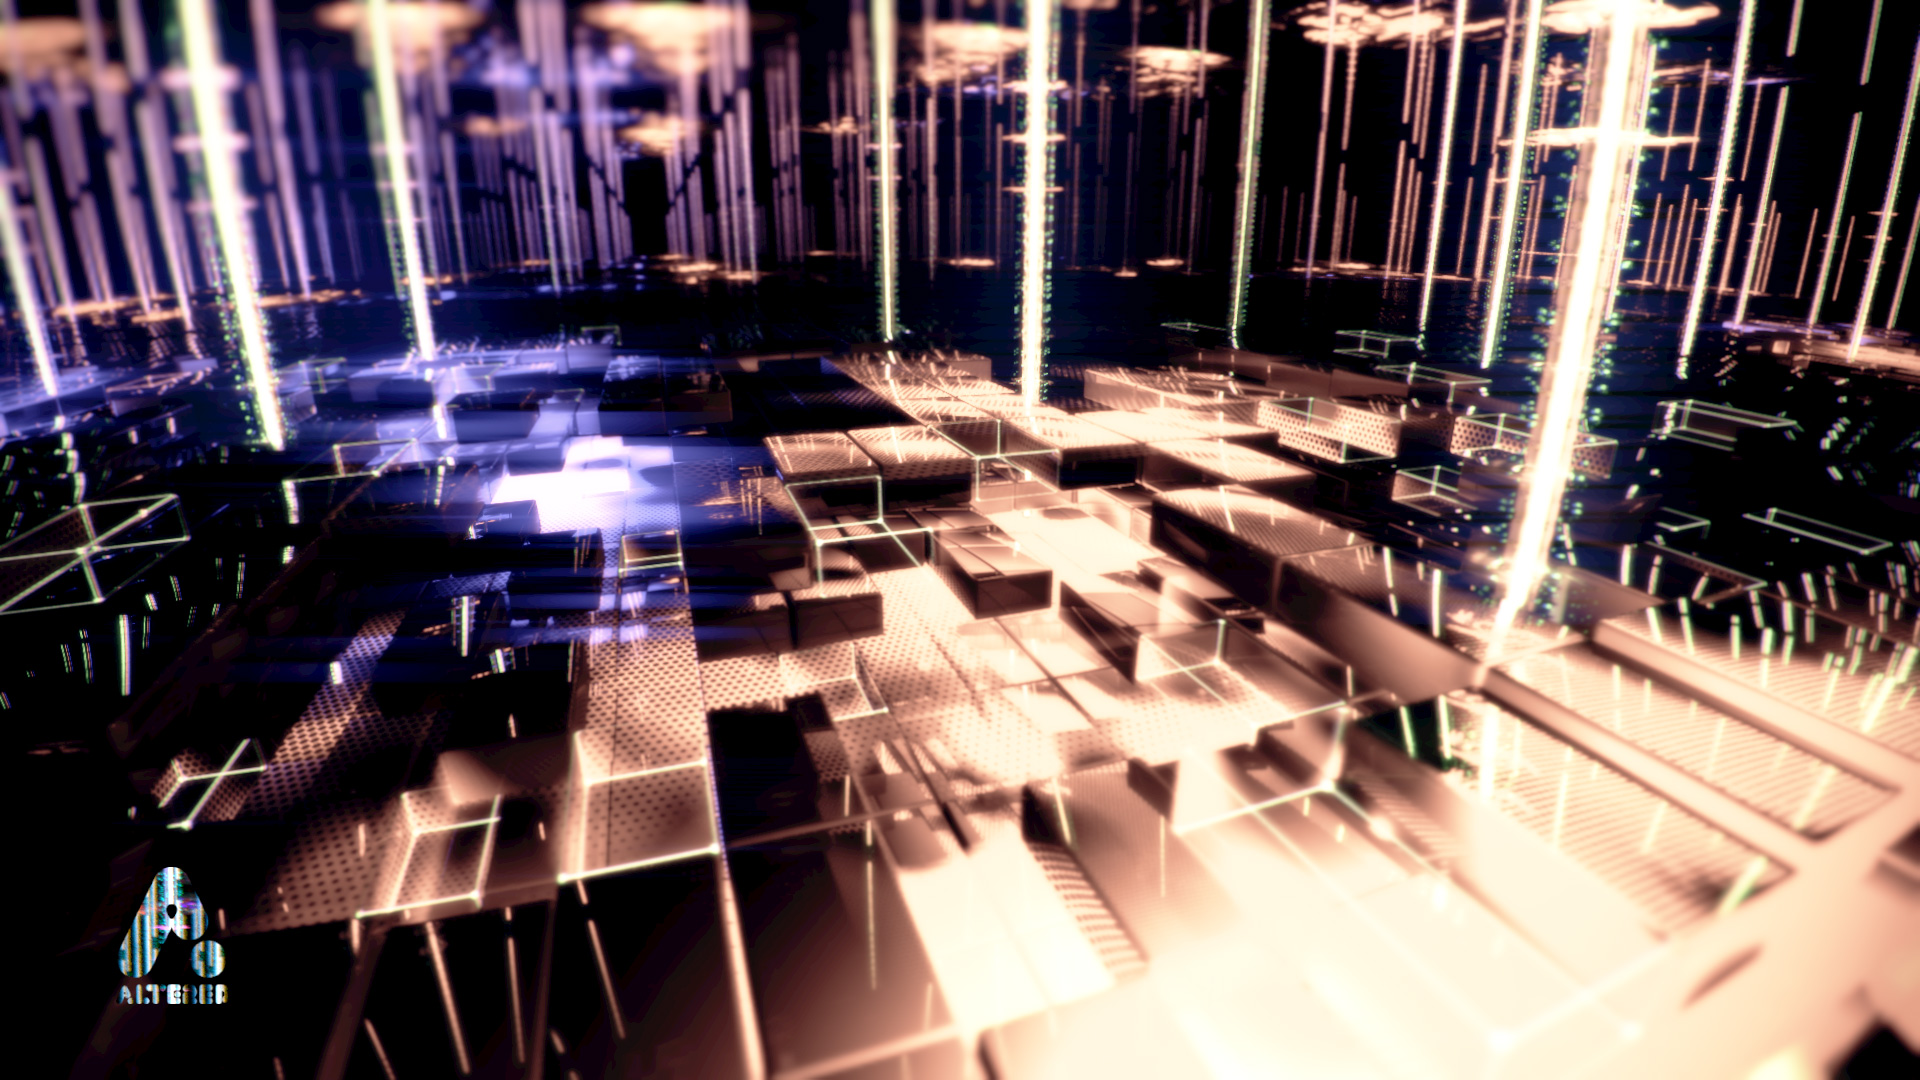 CG, 3D rendered, cinema 4d, landscape cubes sci-fi, by lee robinson, freelance motion graphics designer london, altered tv